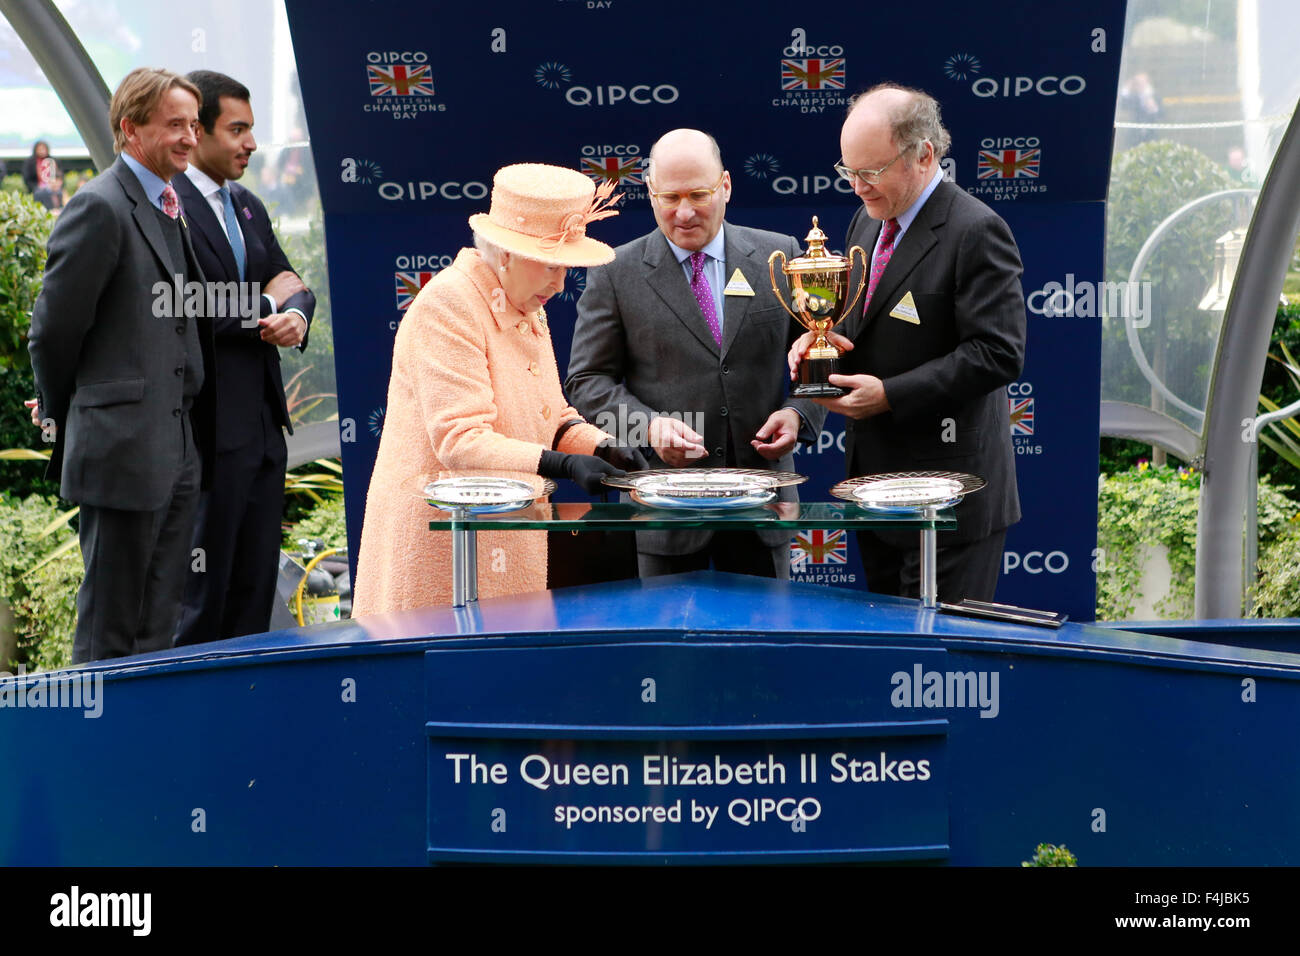 17.10.2015 - Ascot; Winners presentation with Johnny Weatherby (Duke of Devonshire as The Queen's representative), - Stock Image